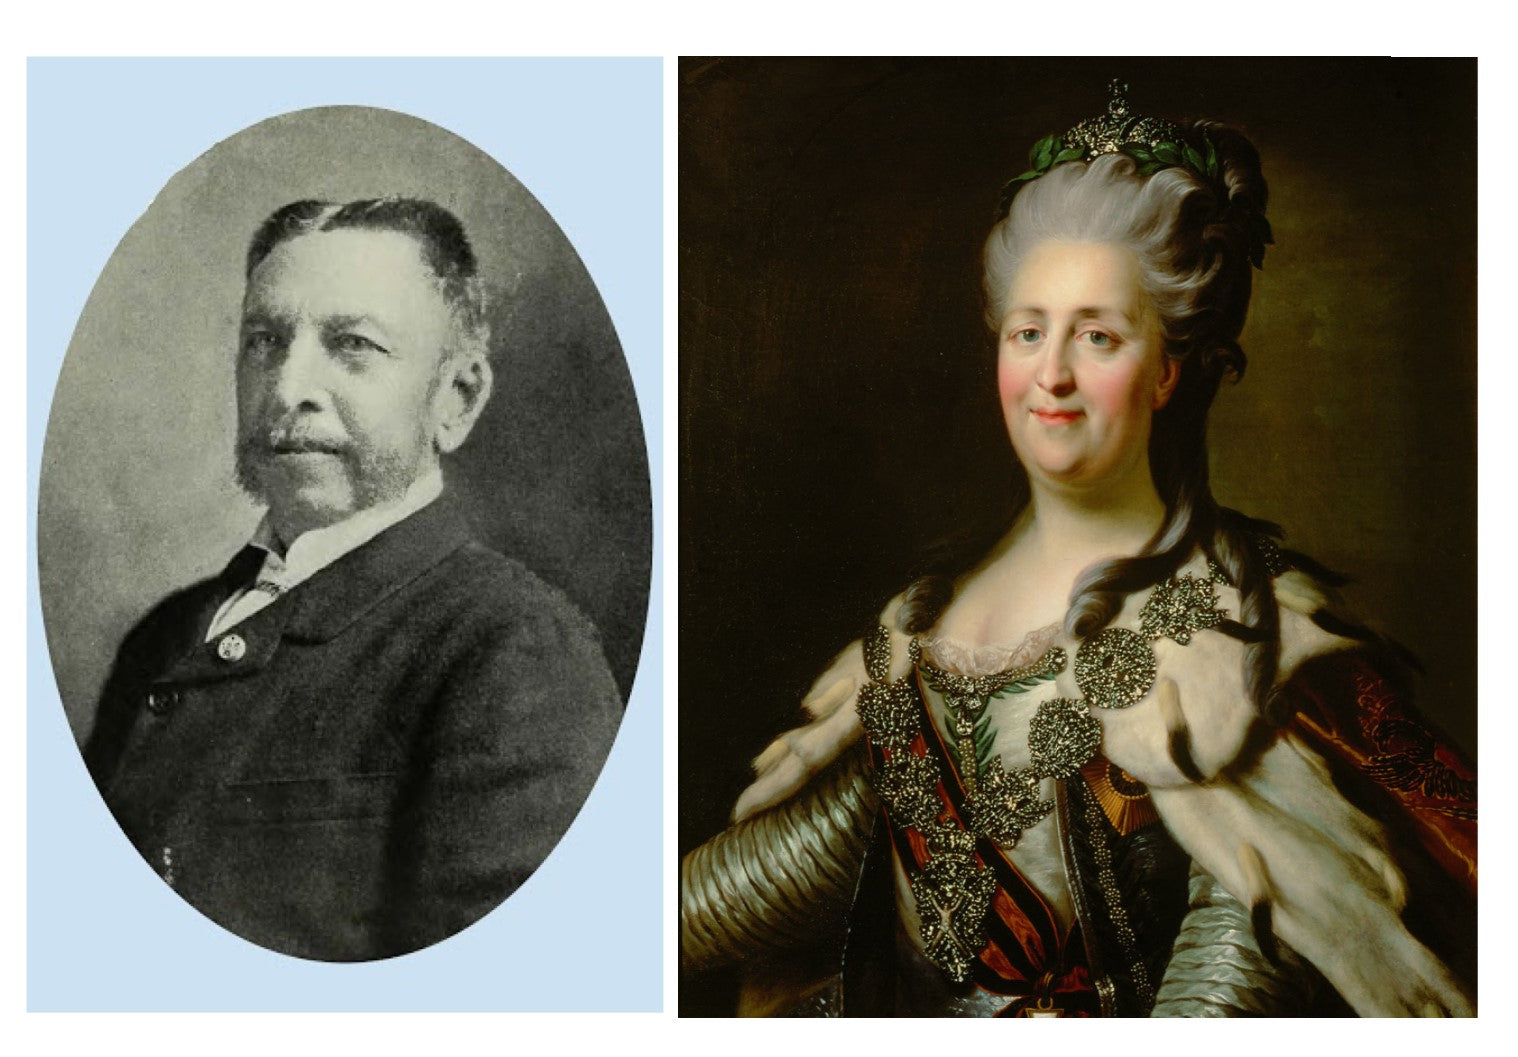 Gustave Bocke & Catherine the Great - Possible creators of the cigar band